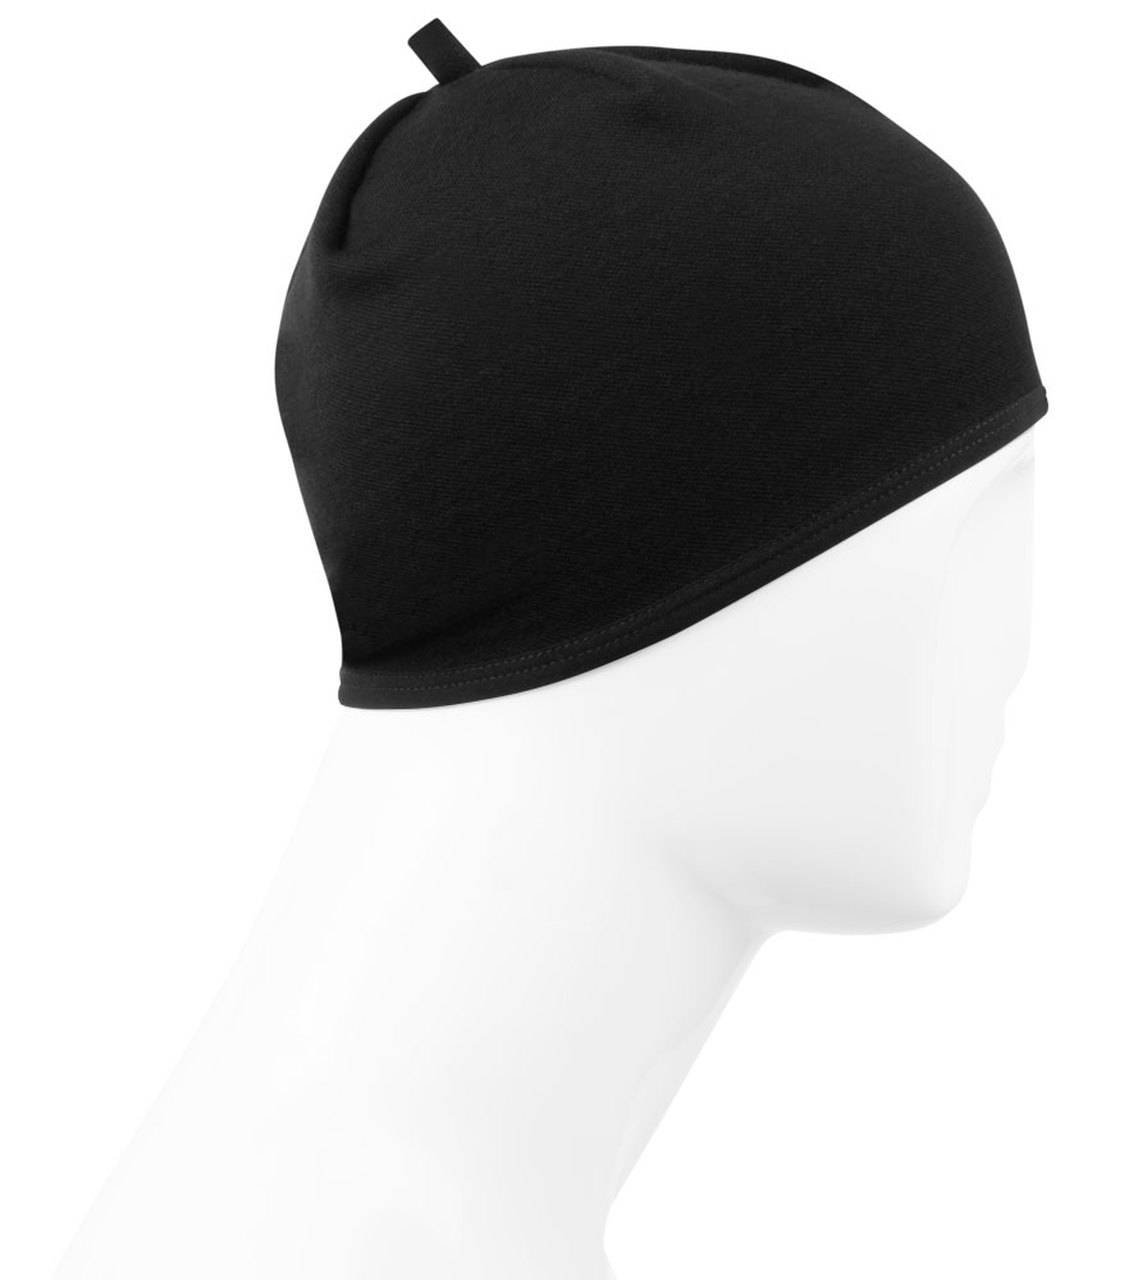 merino wool skull cap side view